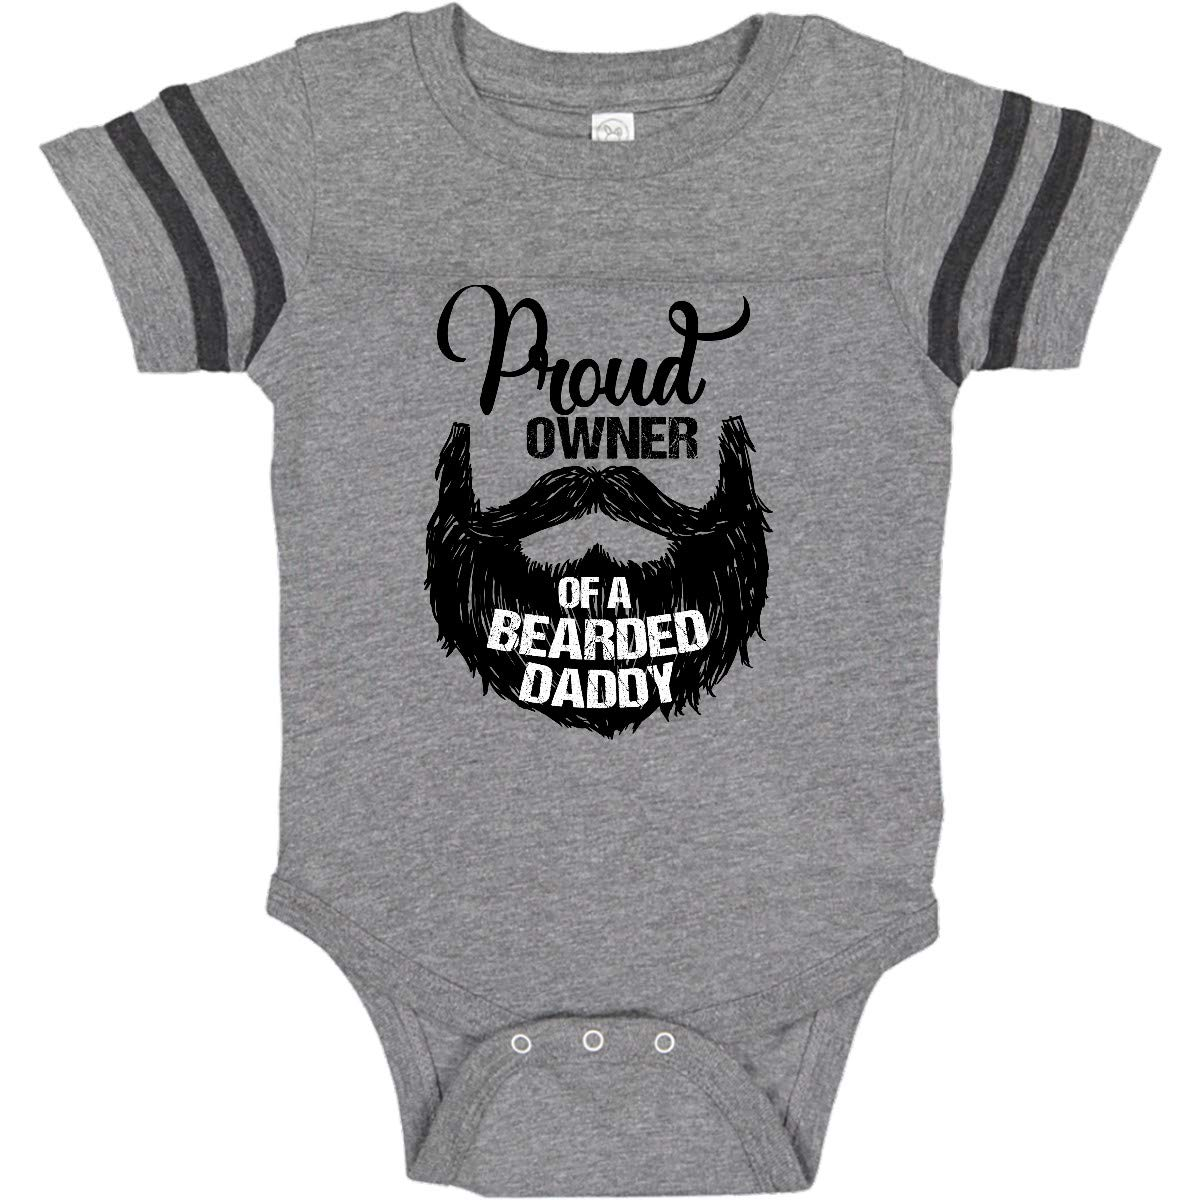 5e73b81129a Amazon.com: inktastic Proud Owner of a Bearded Daddy Infant Creeper:  Clothing